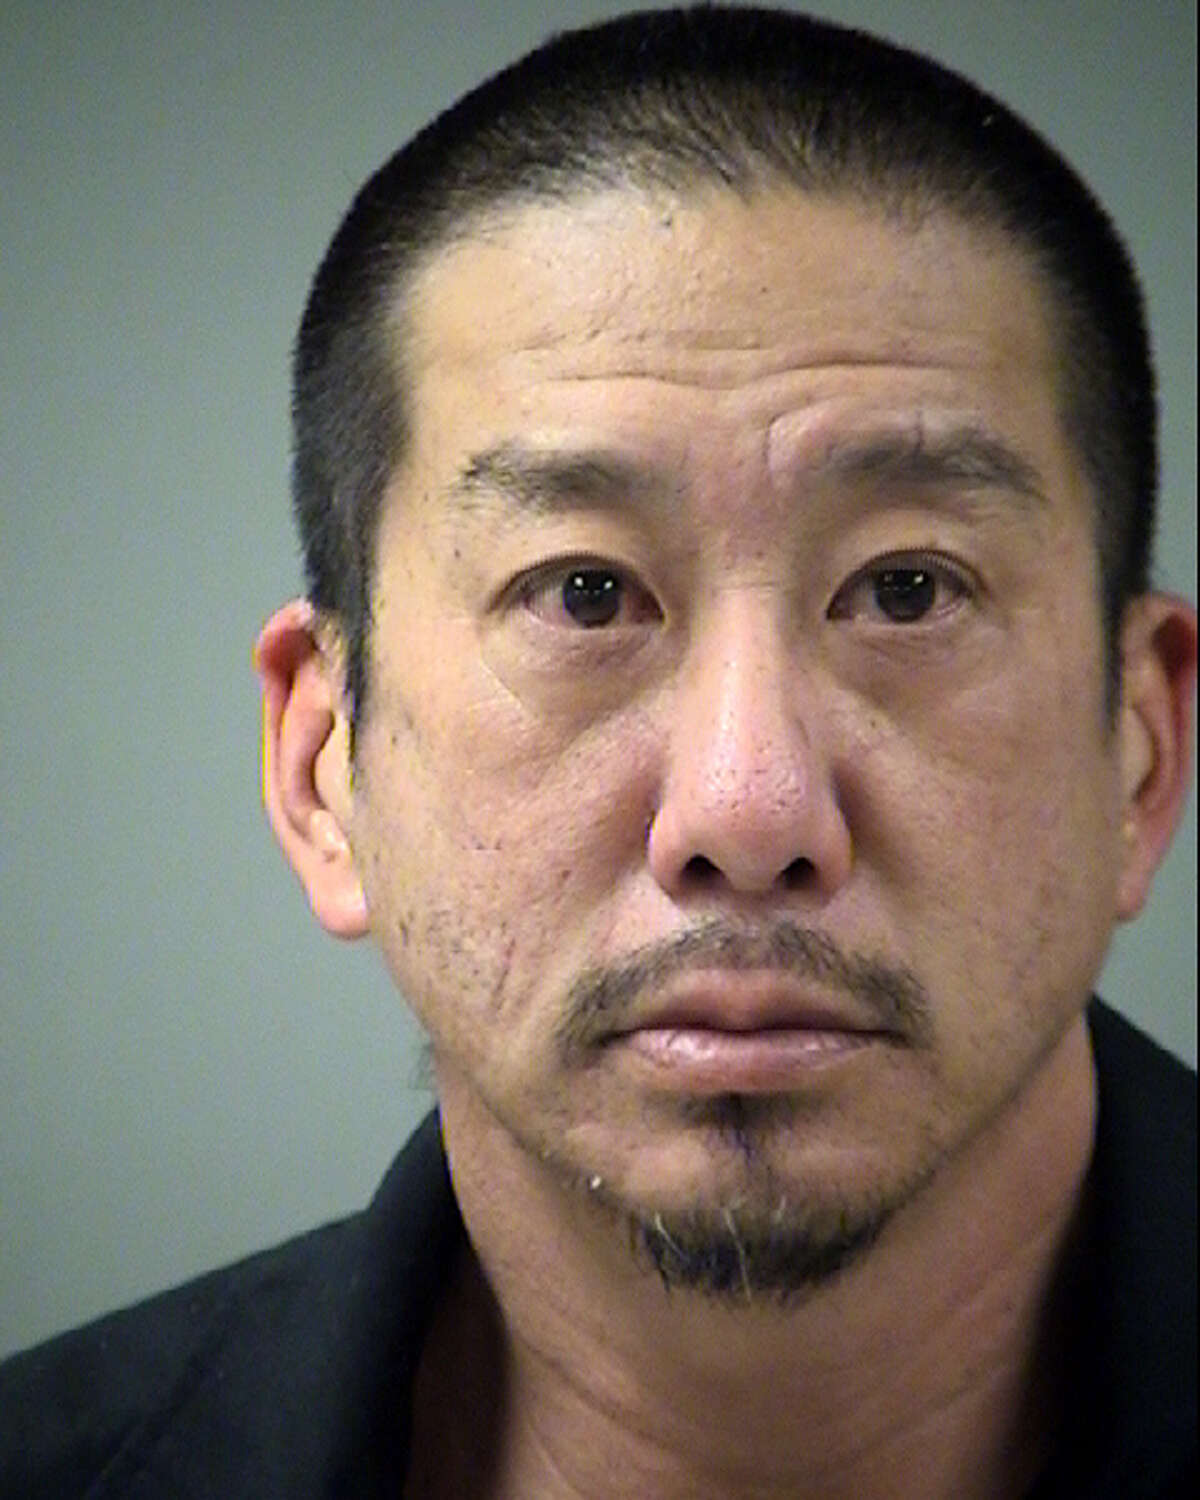 Reid Shizuo Kamitono, 47, is accused of tampering with evidence by trying to conceal a corpse.